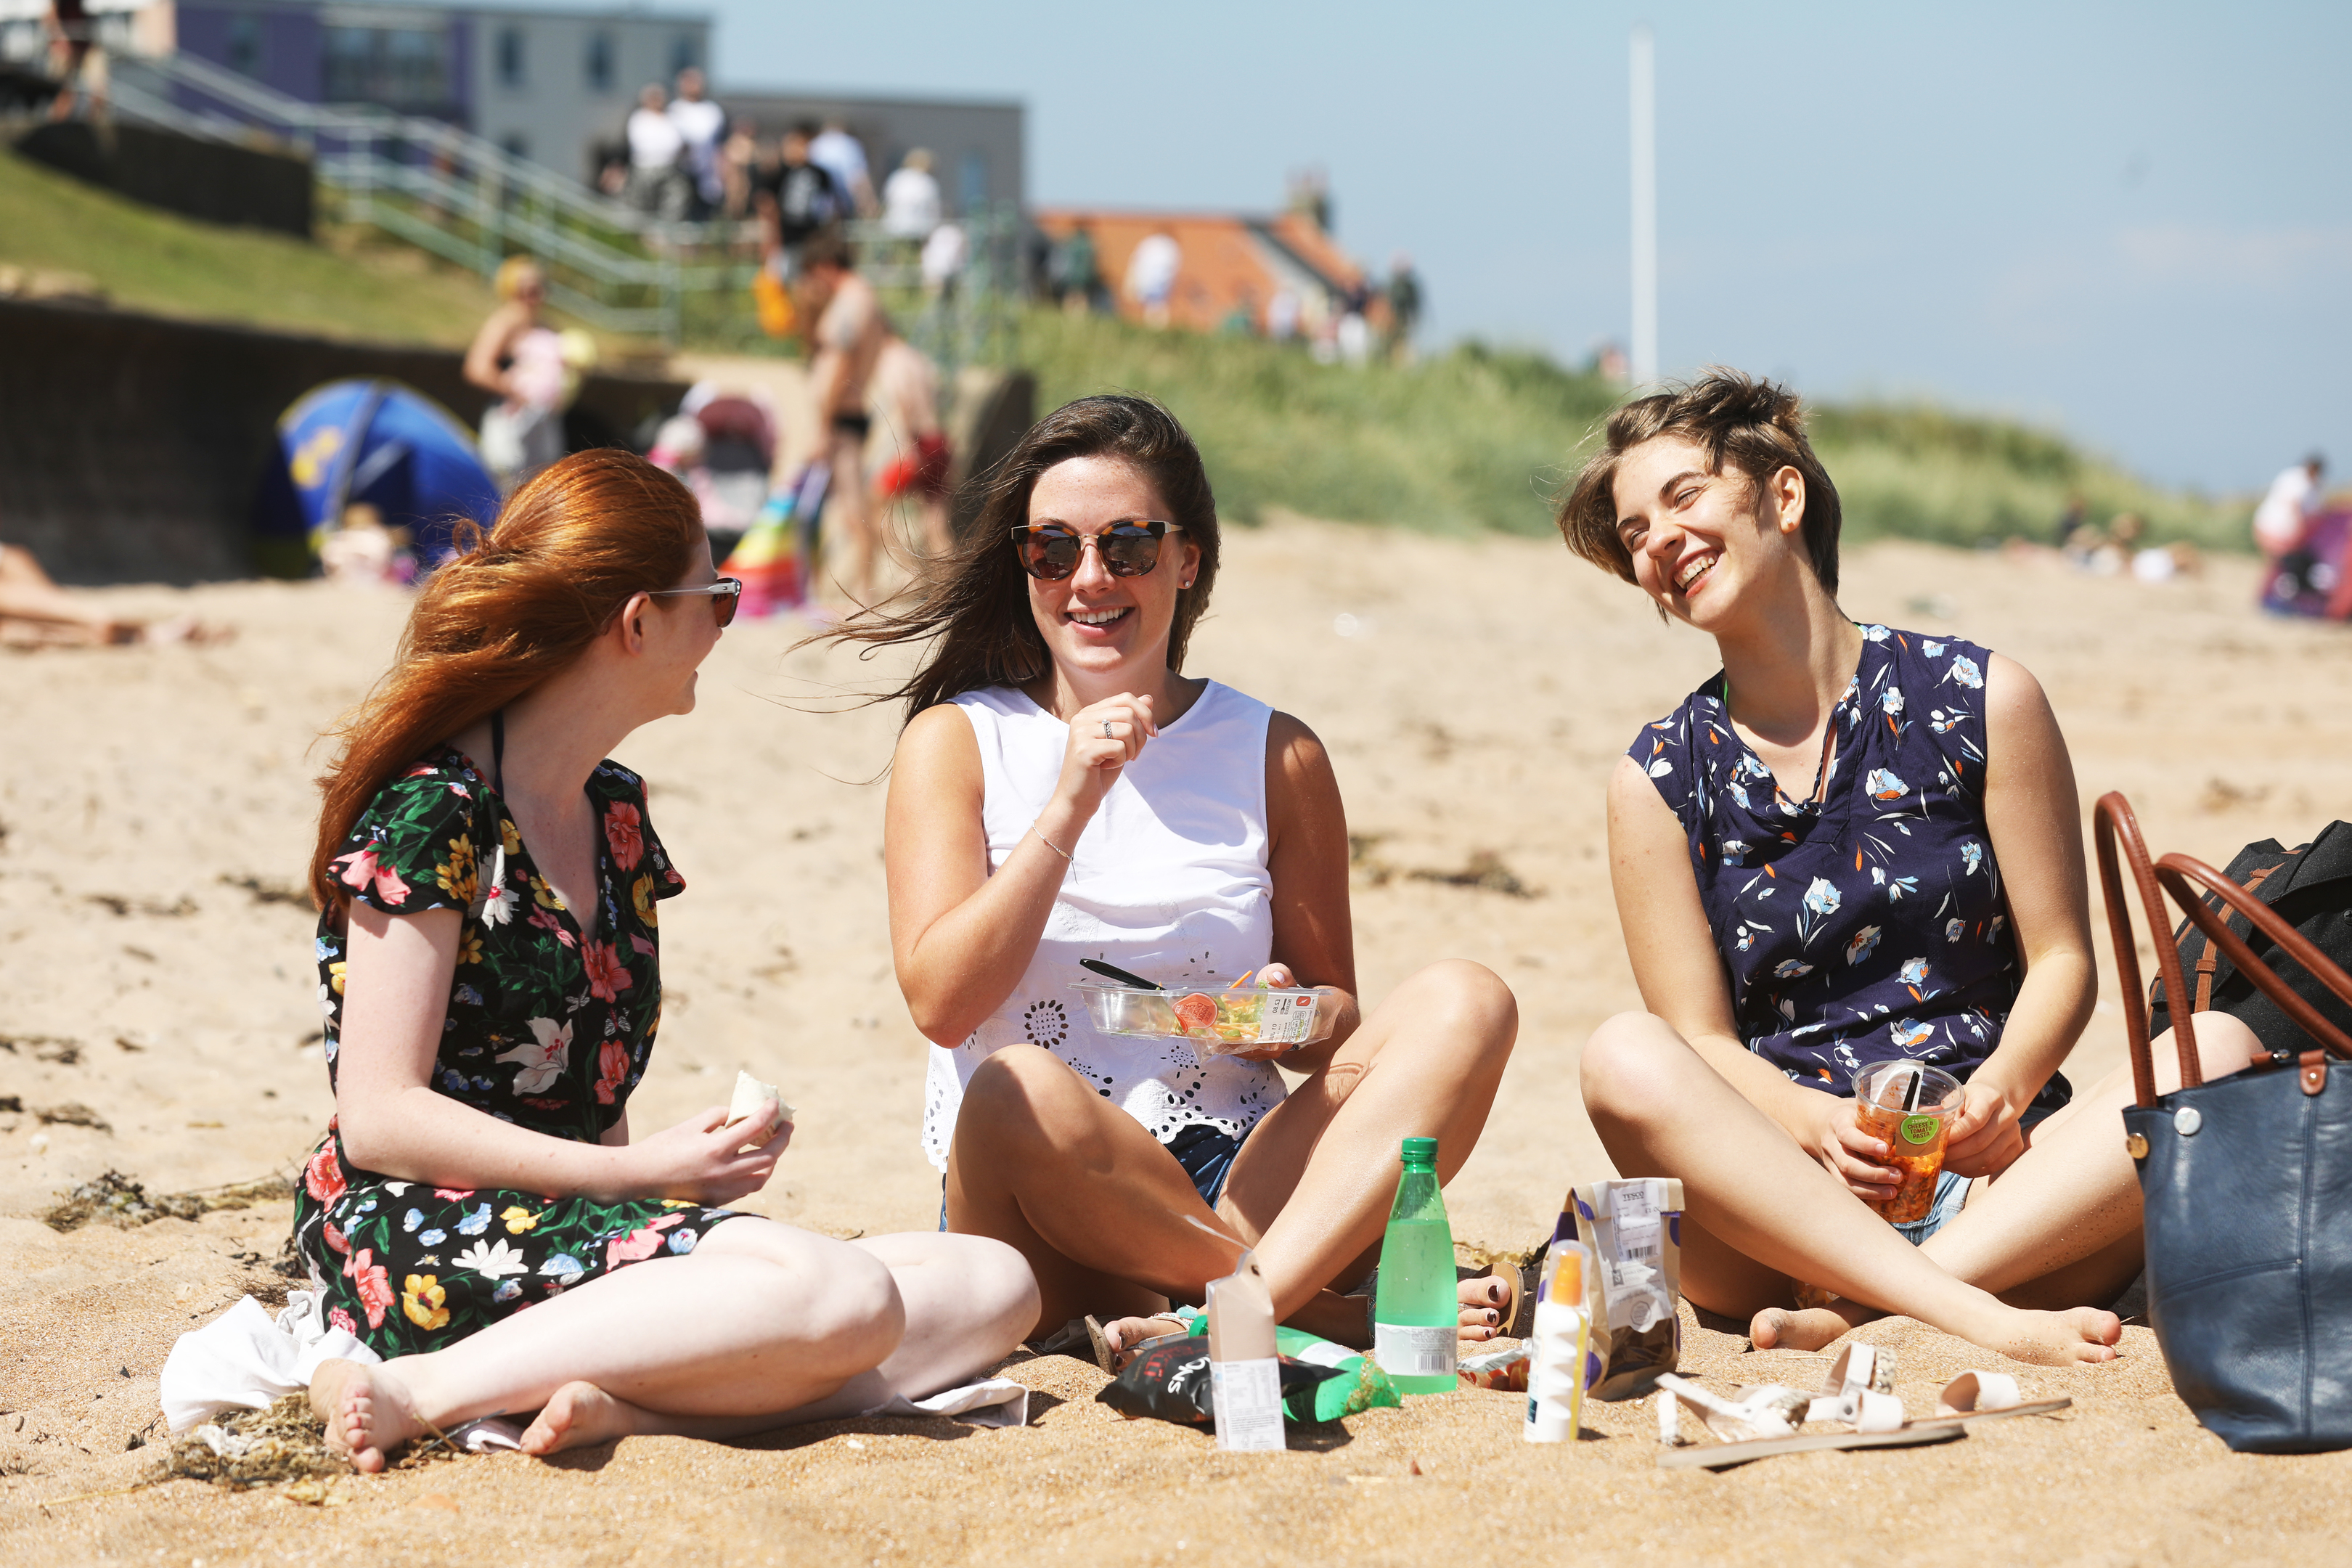 Catherine Mizen, 21, Gillian Anderson, 21 and Eileen Rapport, 21, students from St Andrews enjoying the weather down on the East Sands during the heatwave in 2018.